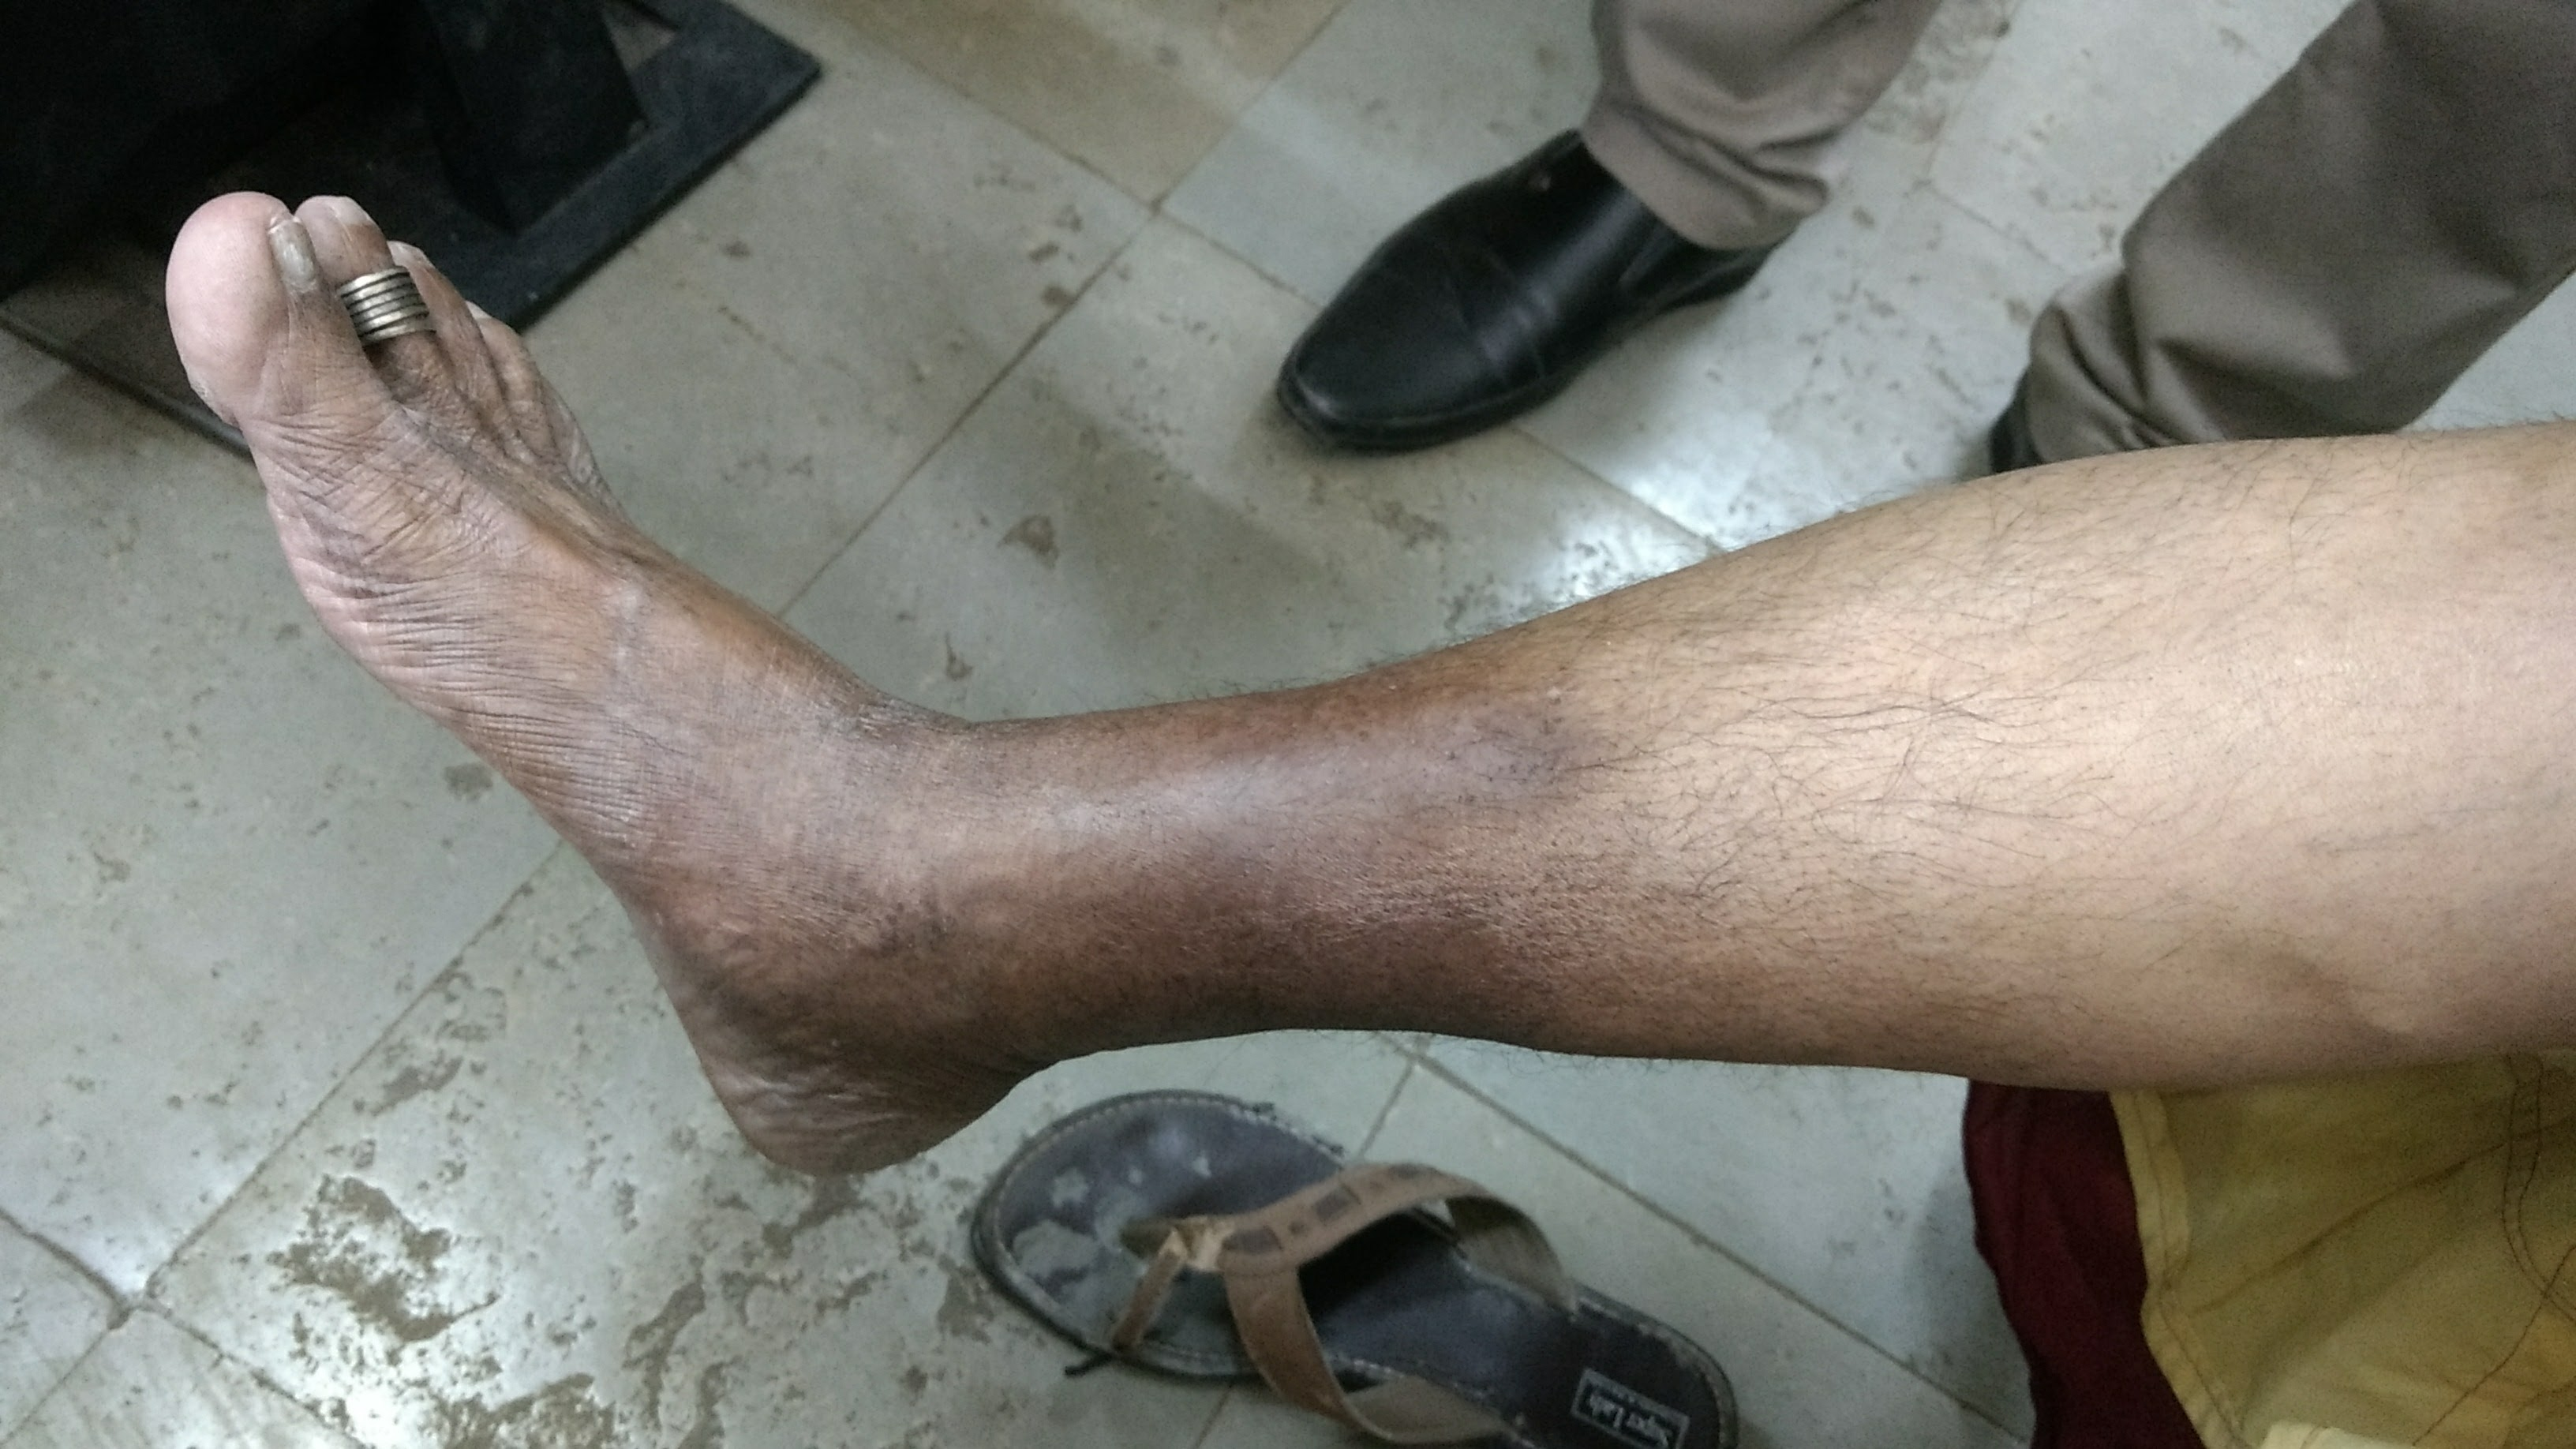 blackening venous insufficiency